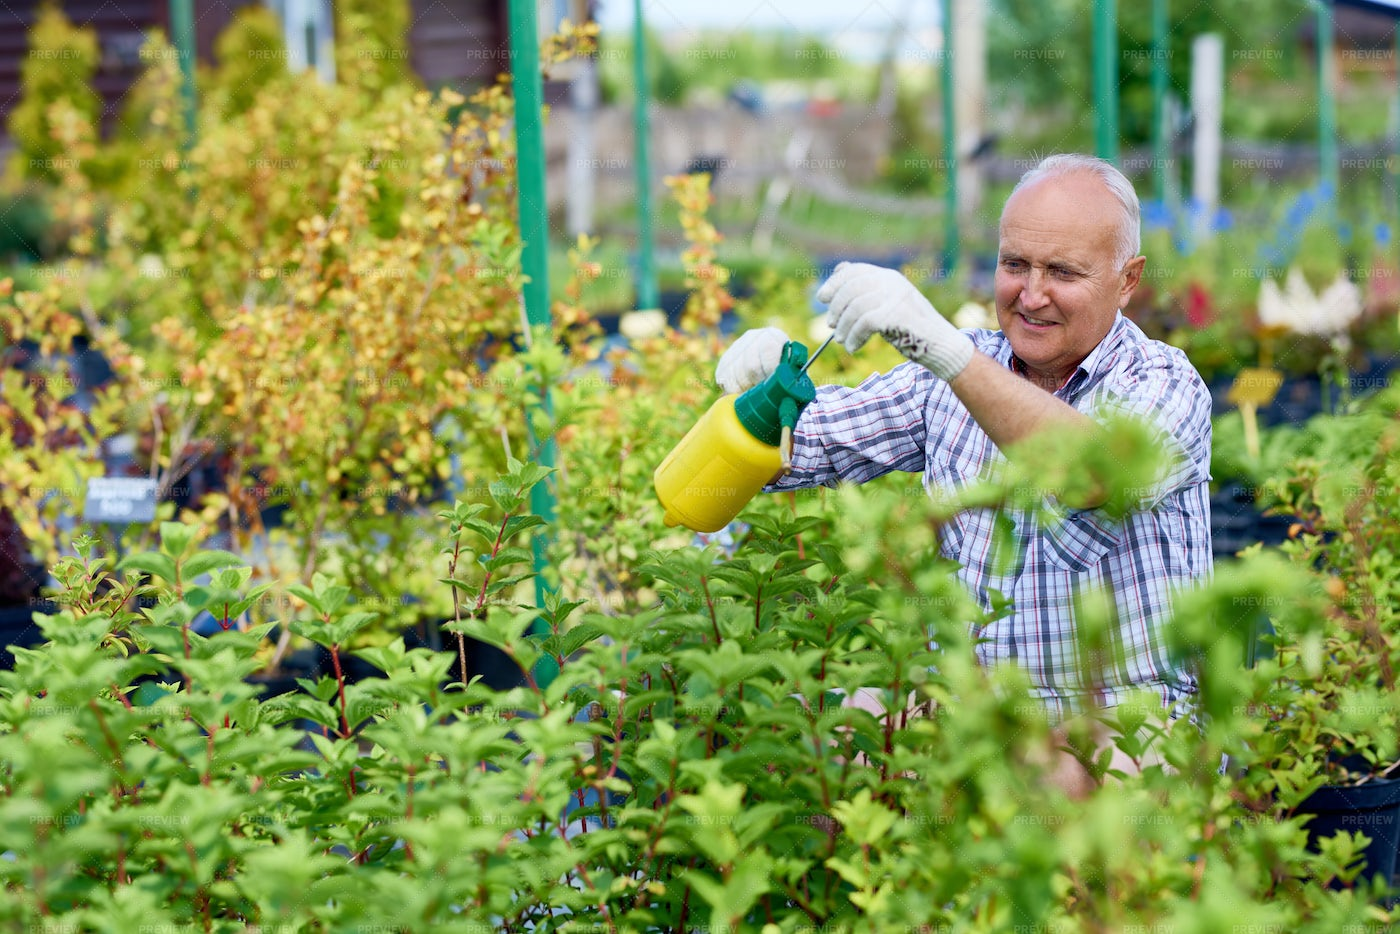 Senior Man Caring For Plants In...: Stock Photos